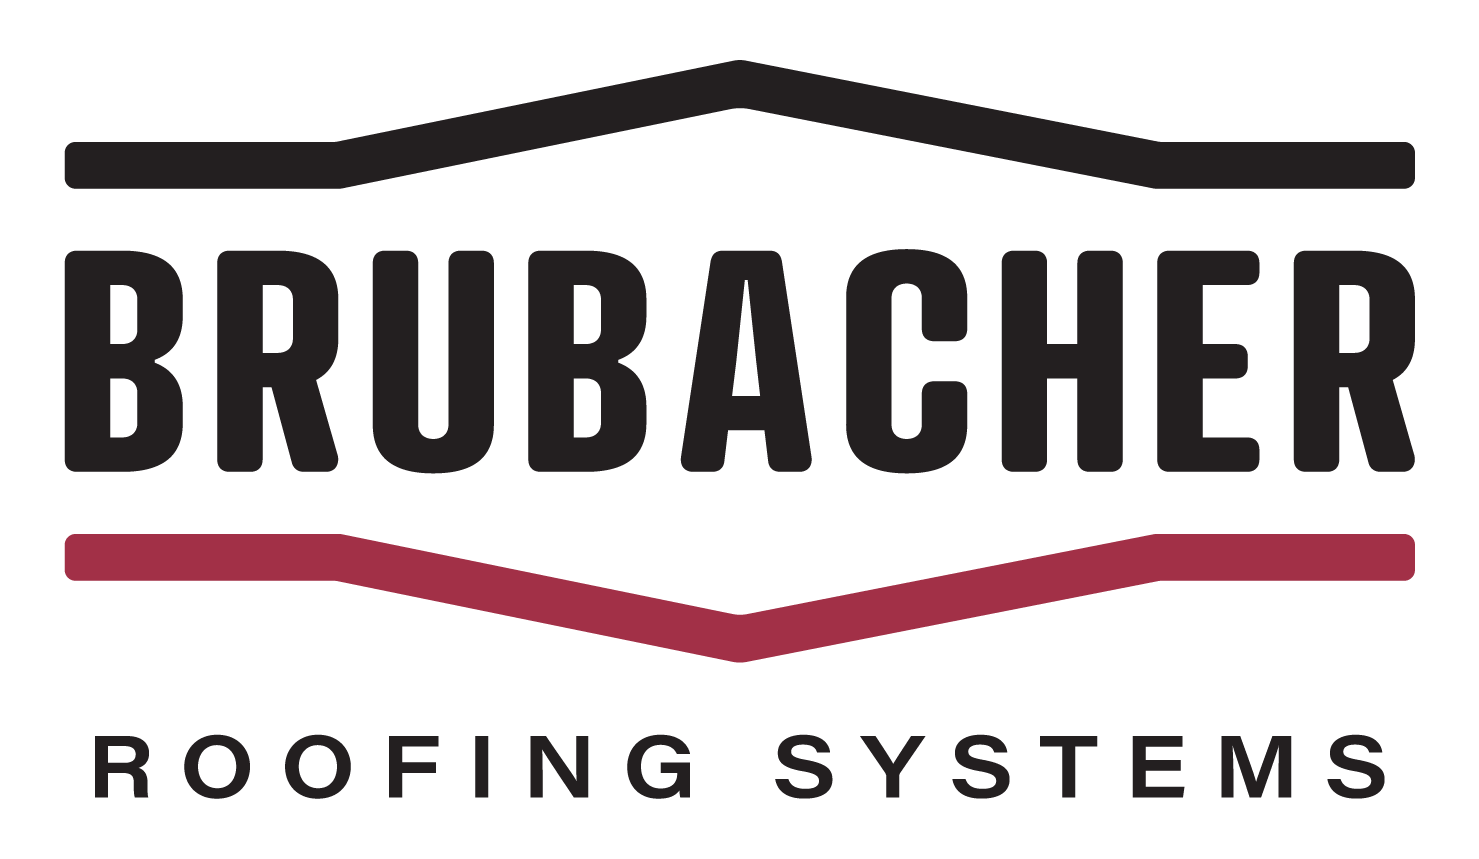 Contact brubacher roofing systems. Contractor clipart roof repair